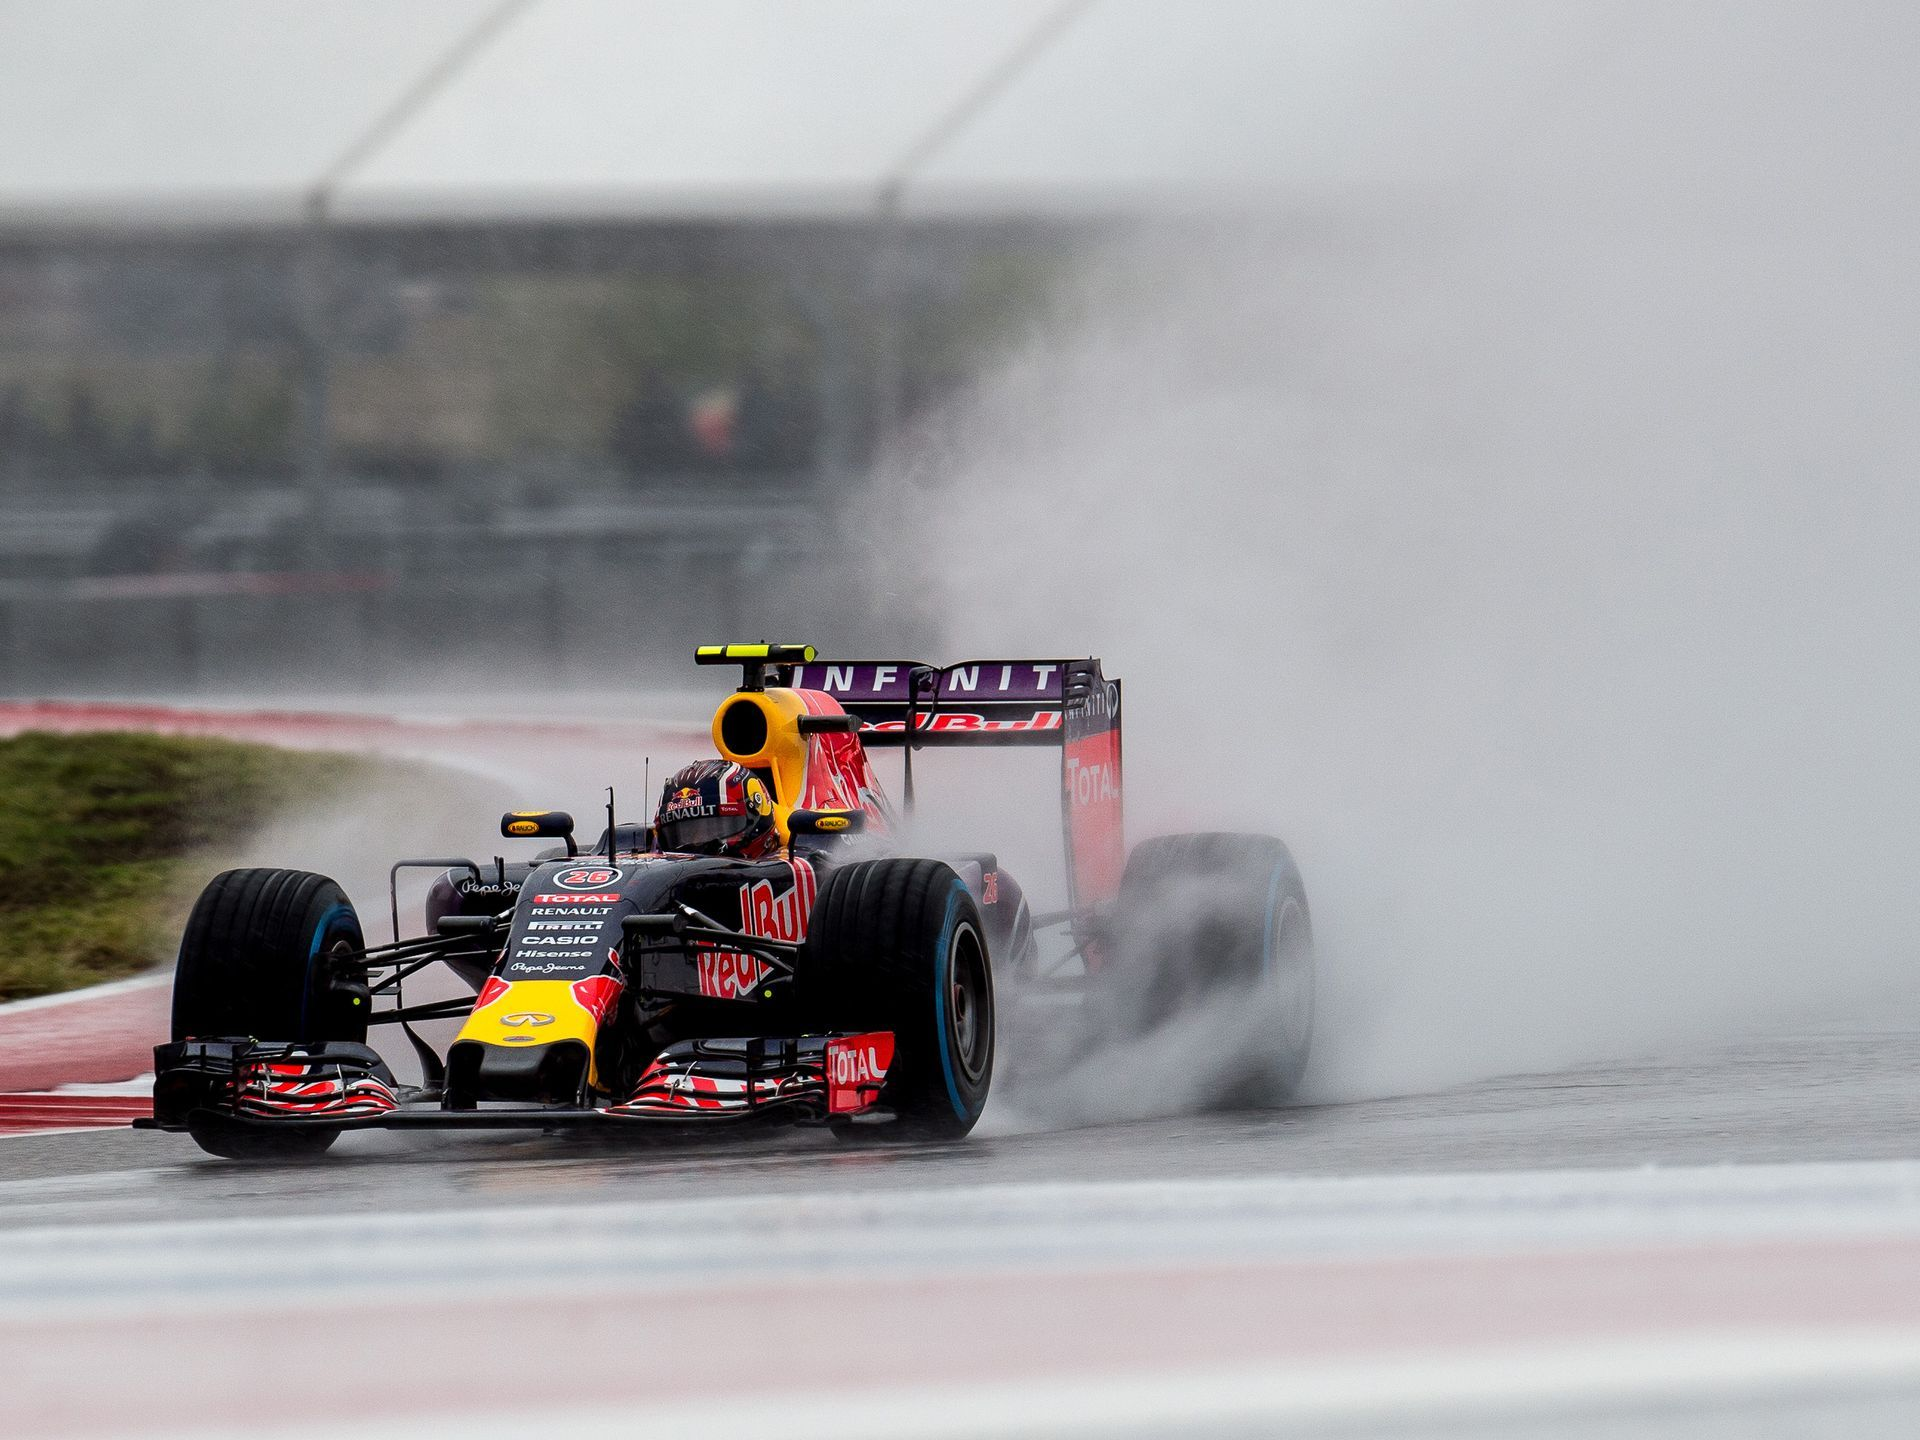 Red Bull Racing driver Daniil Kvyat of Russia races during qualifying for the United States Grand Prix at the Circuit of the Americas in Austin, Texas.  Jerome Miron, USA TODAY Sports